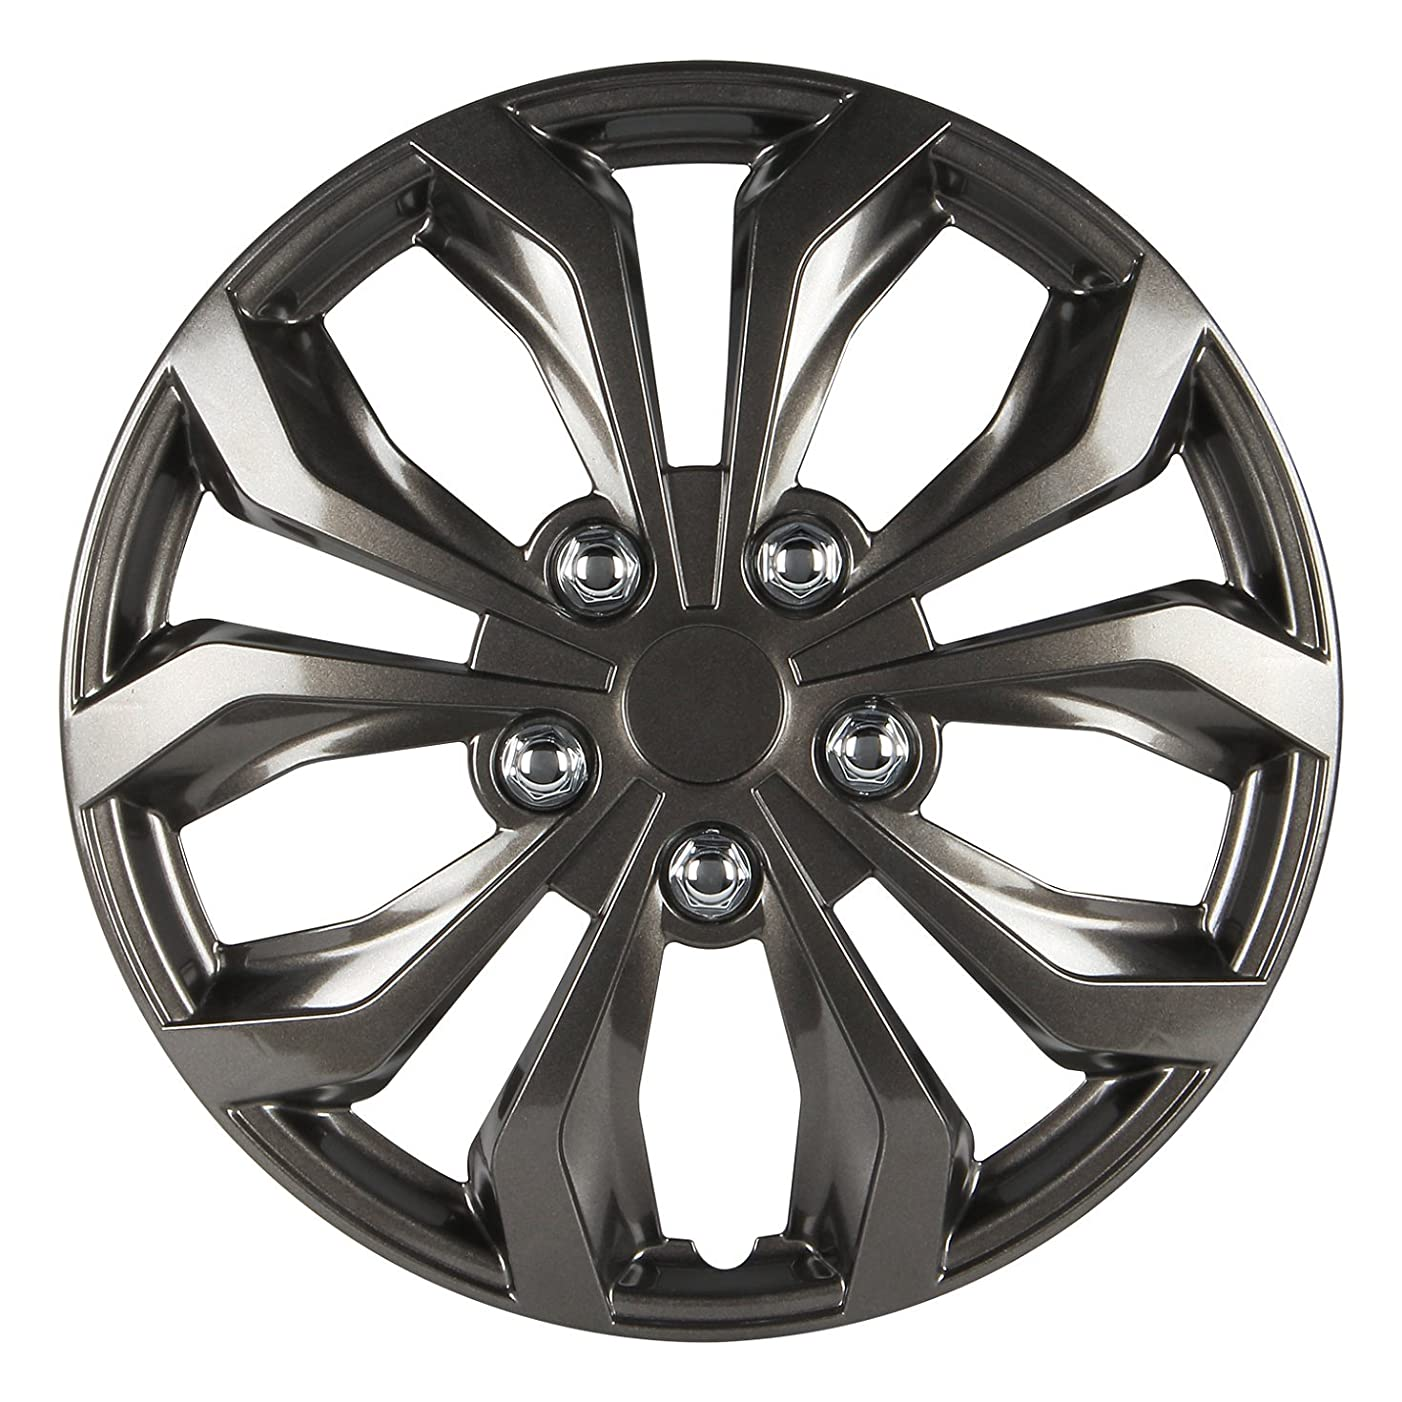 Pilot WH555-14GM-B Universal Fit Performance Chevy Cruz Style Gunmetal Finish 14 Inch Wheel Covers - Set of 4